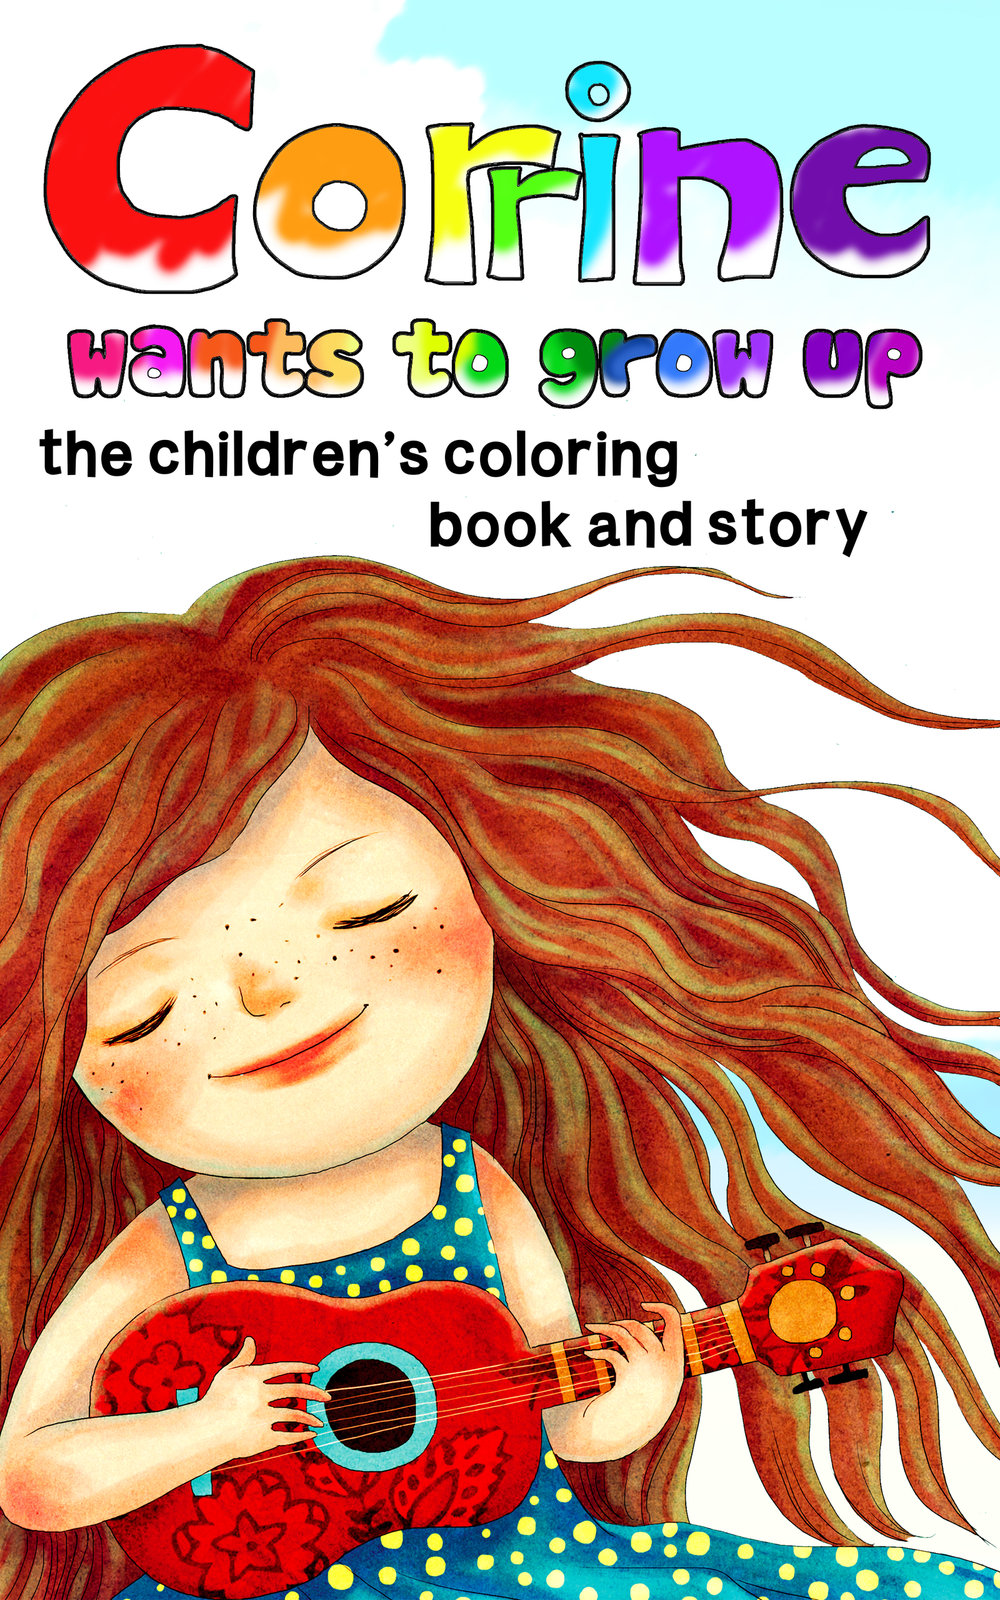 Corrine Wants to Grow Up - the coloring book and story.   Corrine can't wait to be an adult. Her parents teach her to use mindful breathing to overcome her outbursts and she settles into an essential life lesson: she is perfect the way she is.  Plenty of details to keep children ages 4-8 occupied. Also a great companion to the original Corrine Wants to Grow Up story book.  This book is also written by Judy Tsuei and Adam Lang. Illustrated by Khoa Le